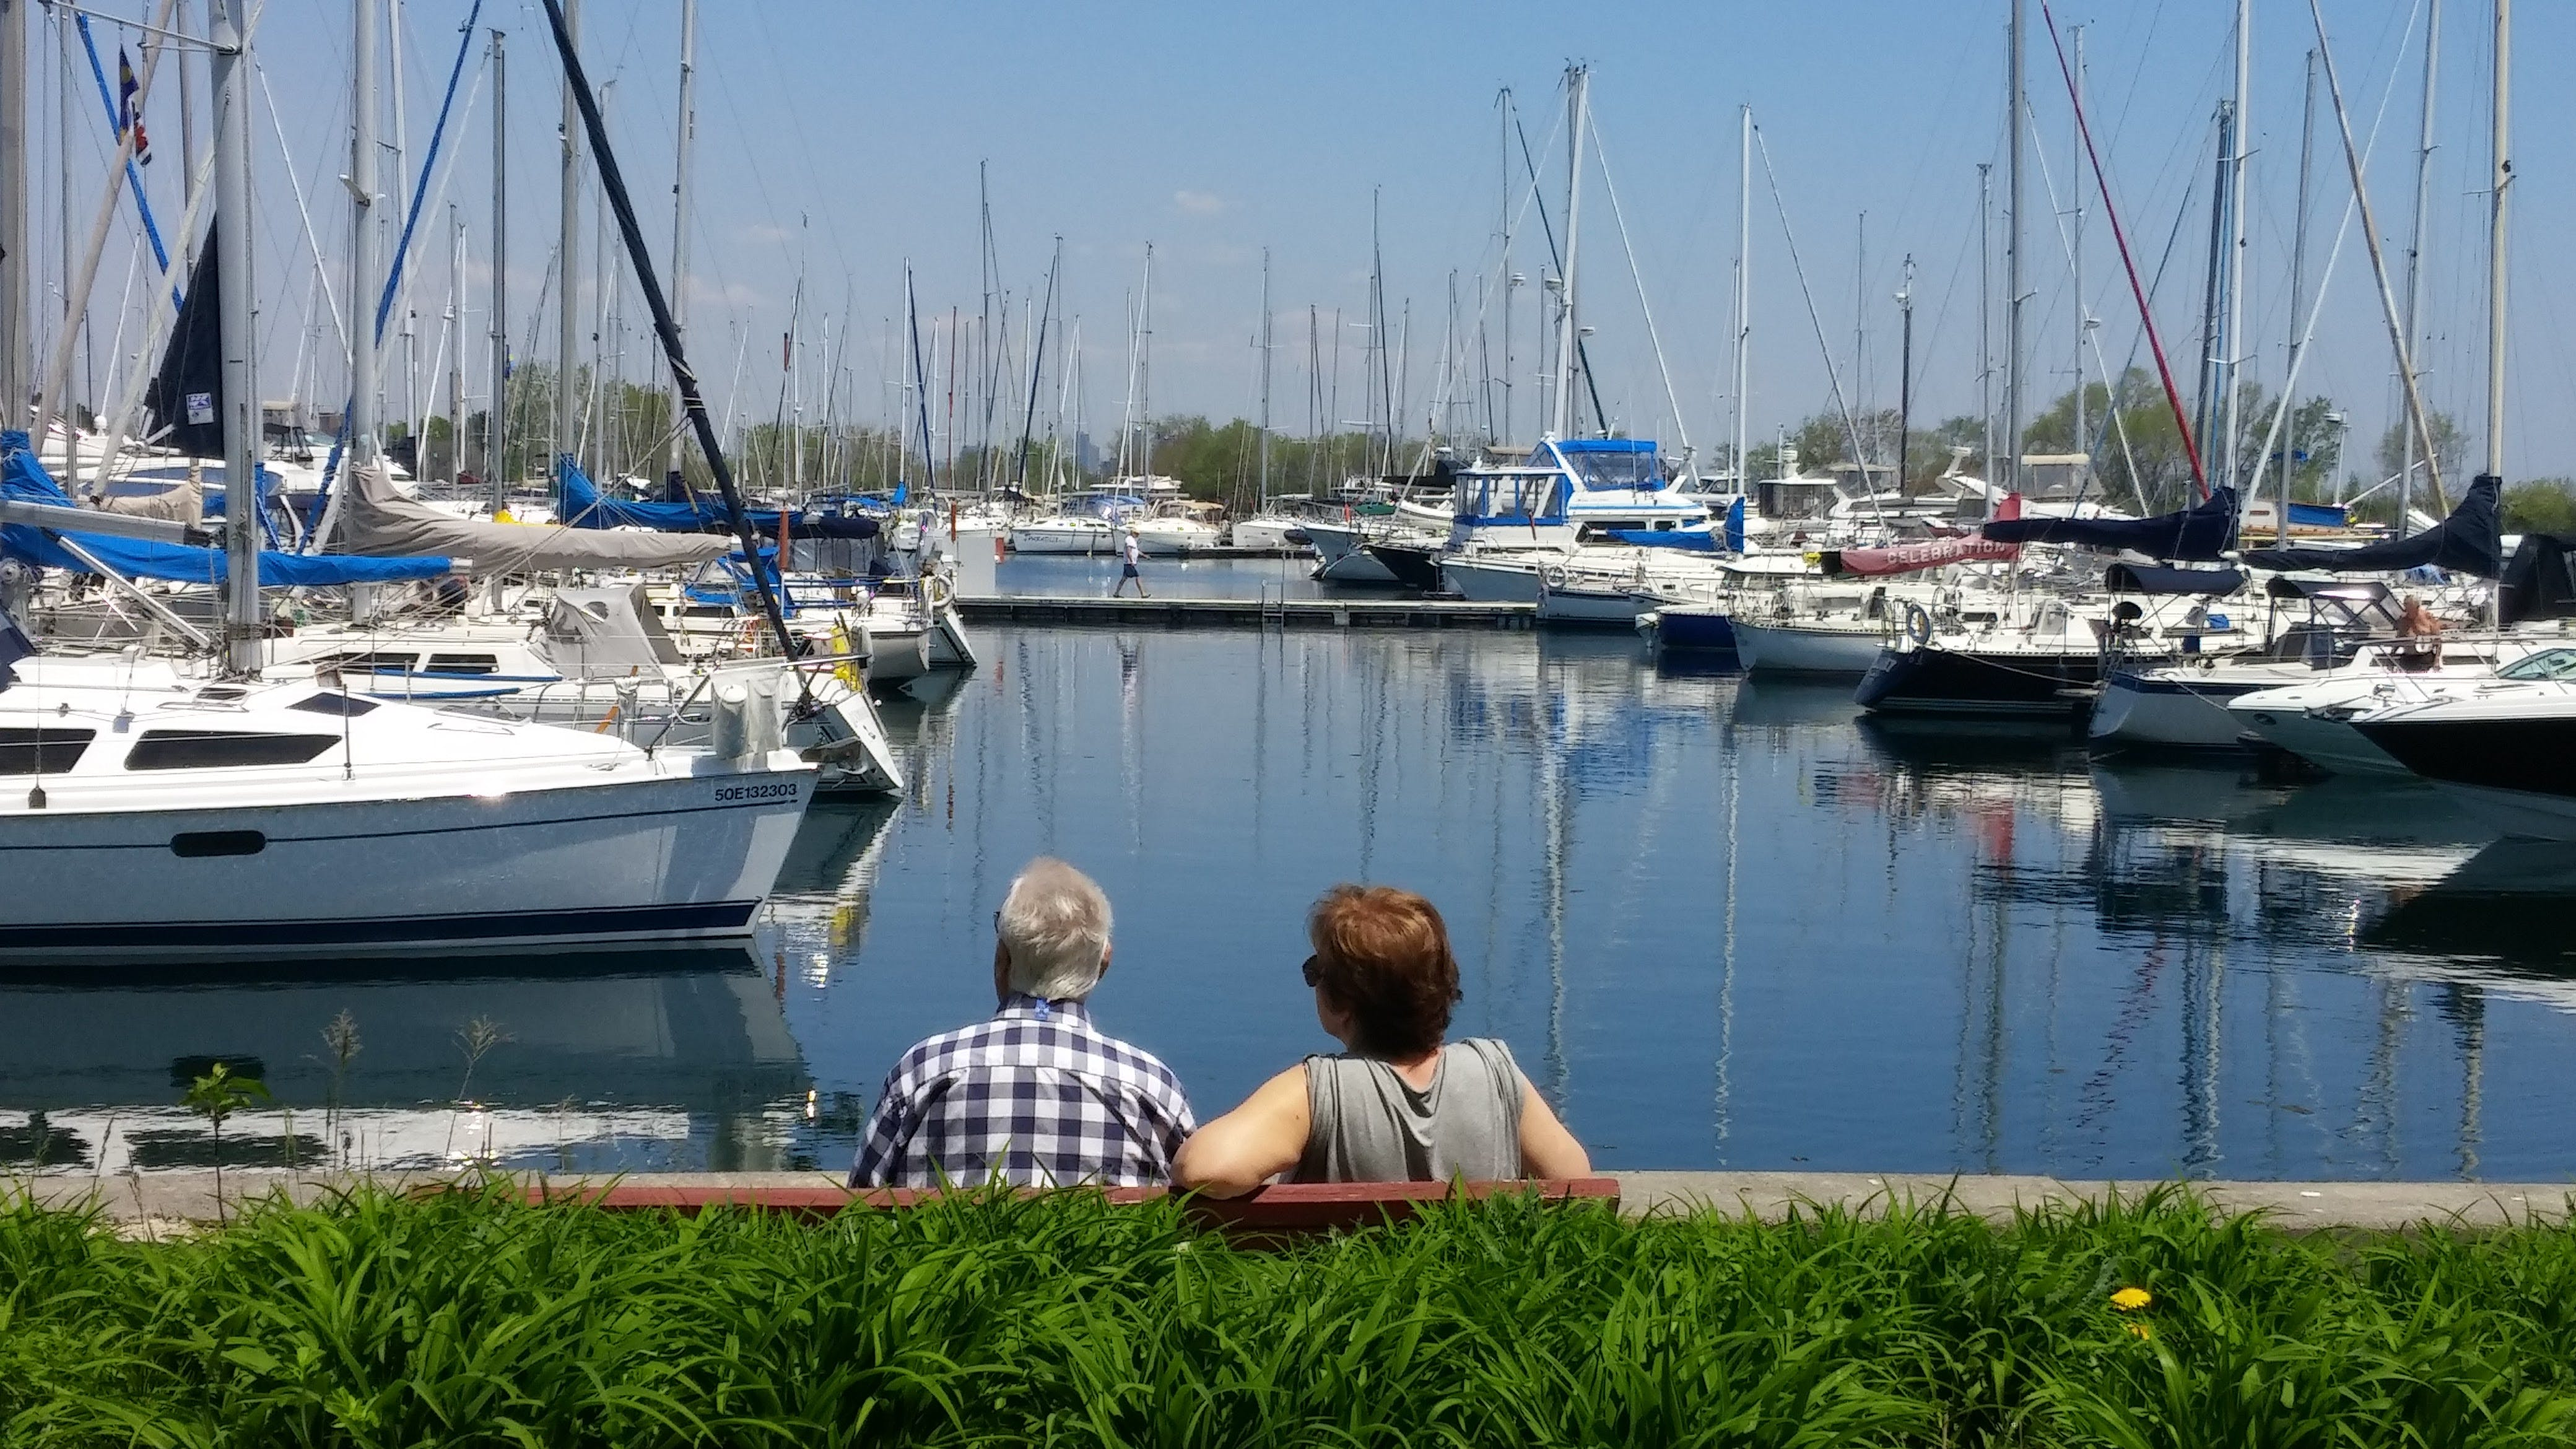 Free stock photo of boats, couple, harbour, sailboats